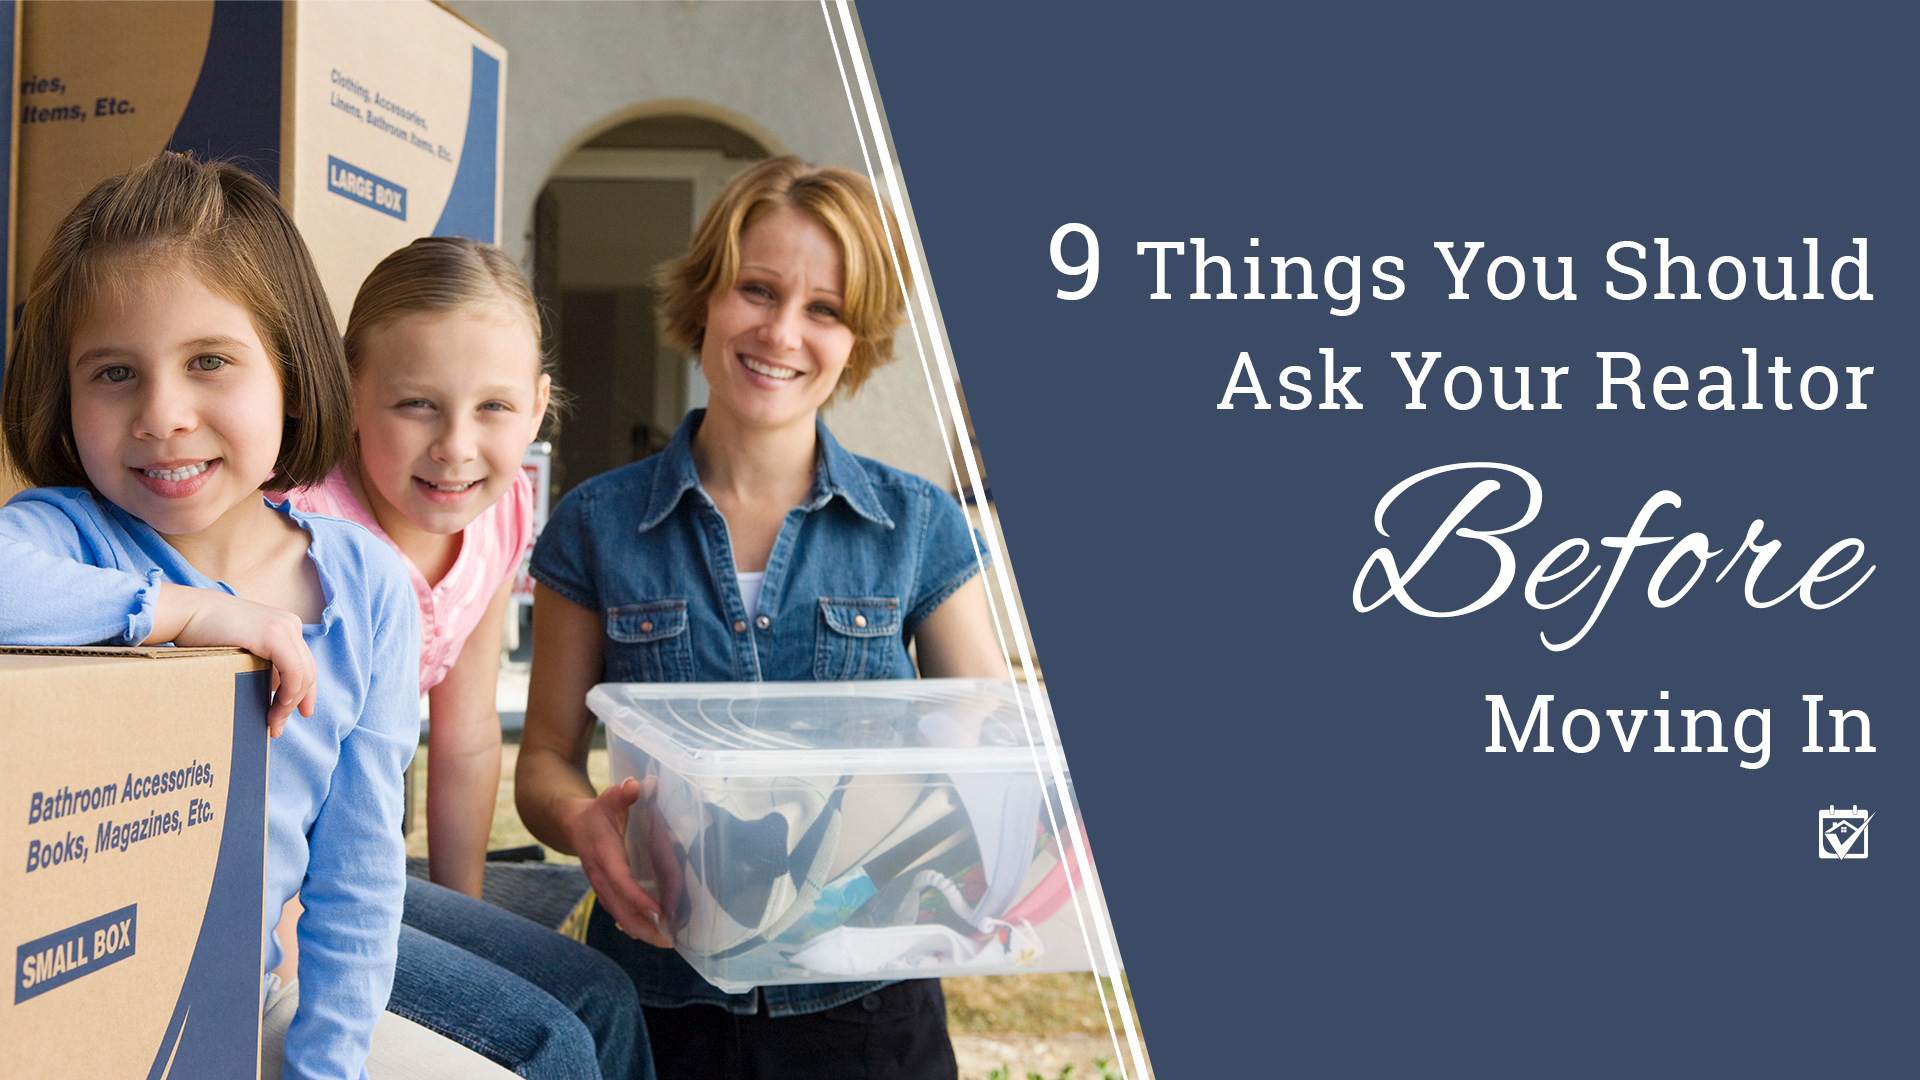 9 things to ask your Realtor before moving in